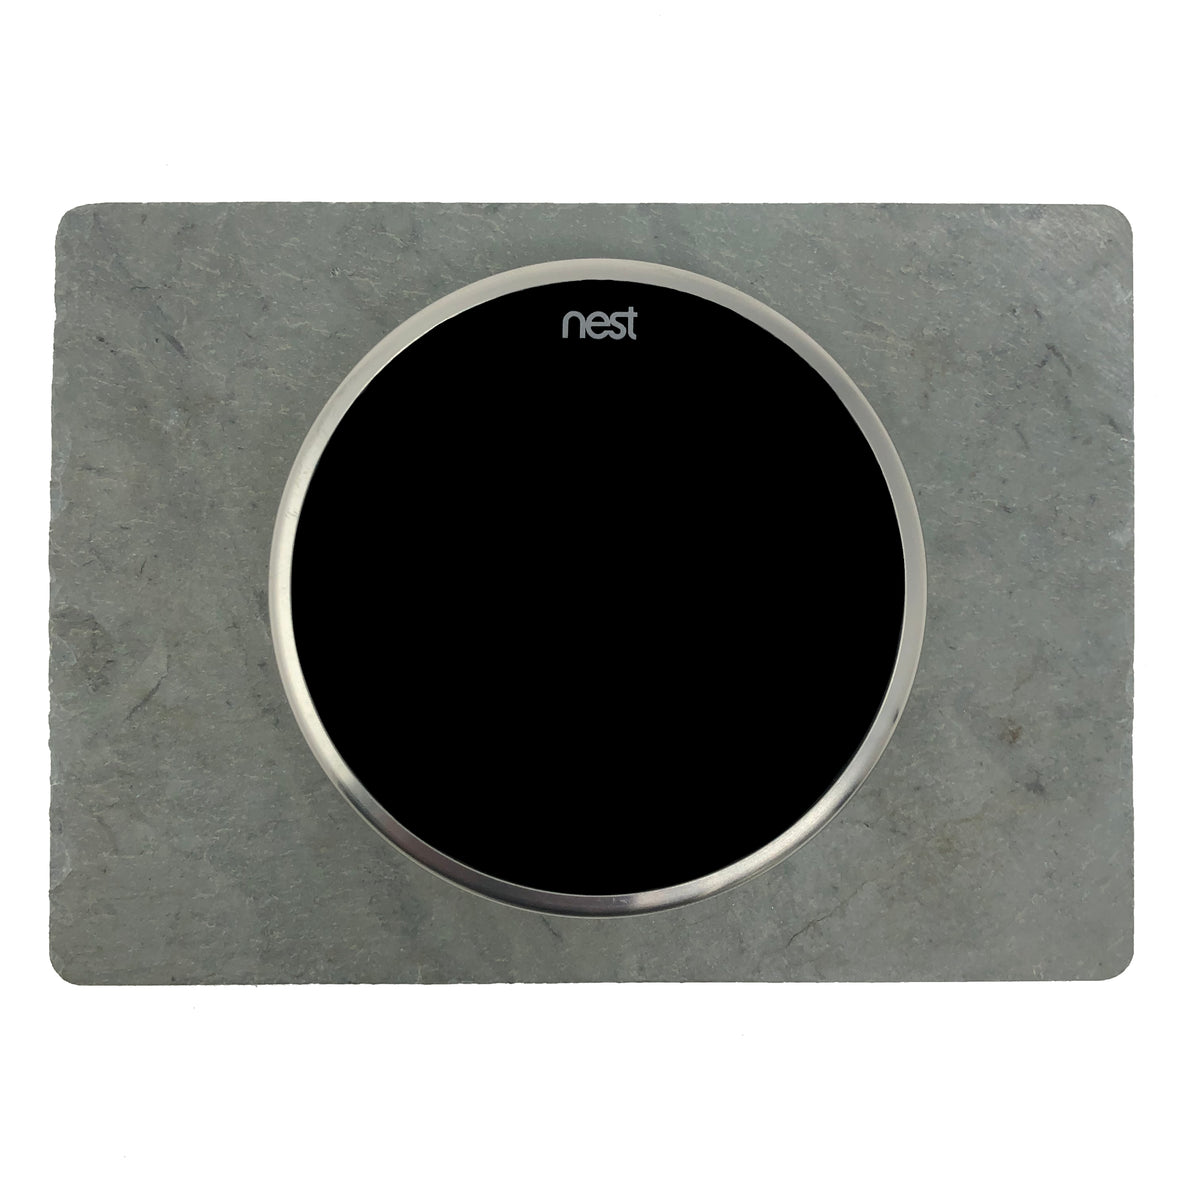 Nest Wall Plate 6 x 4.33 inches Gray Rectangle